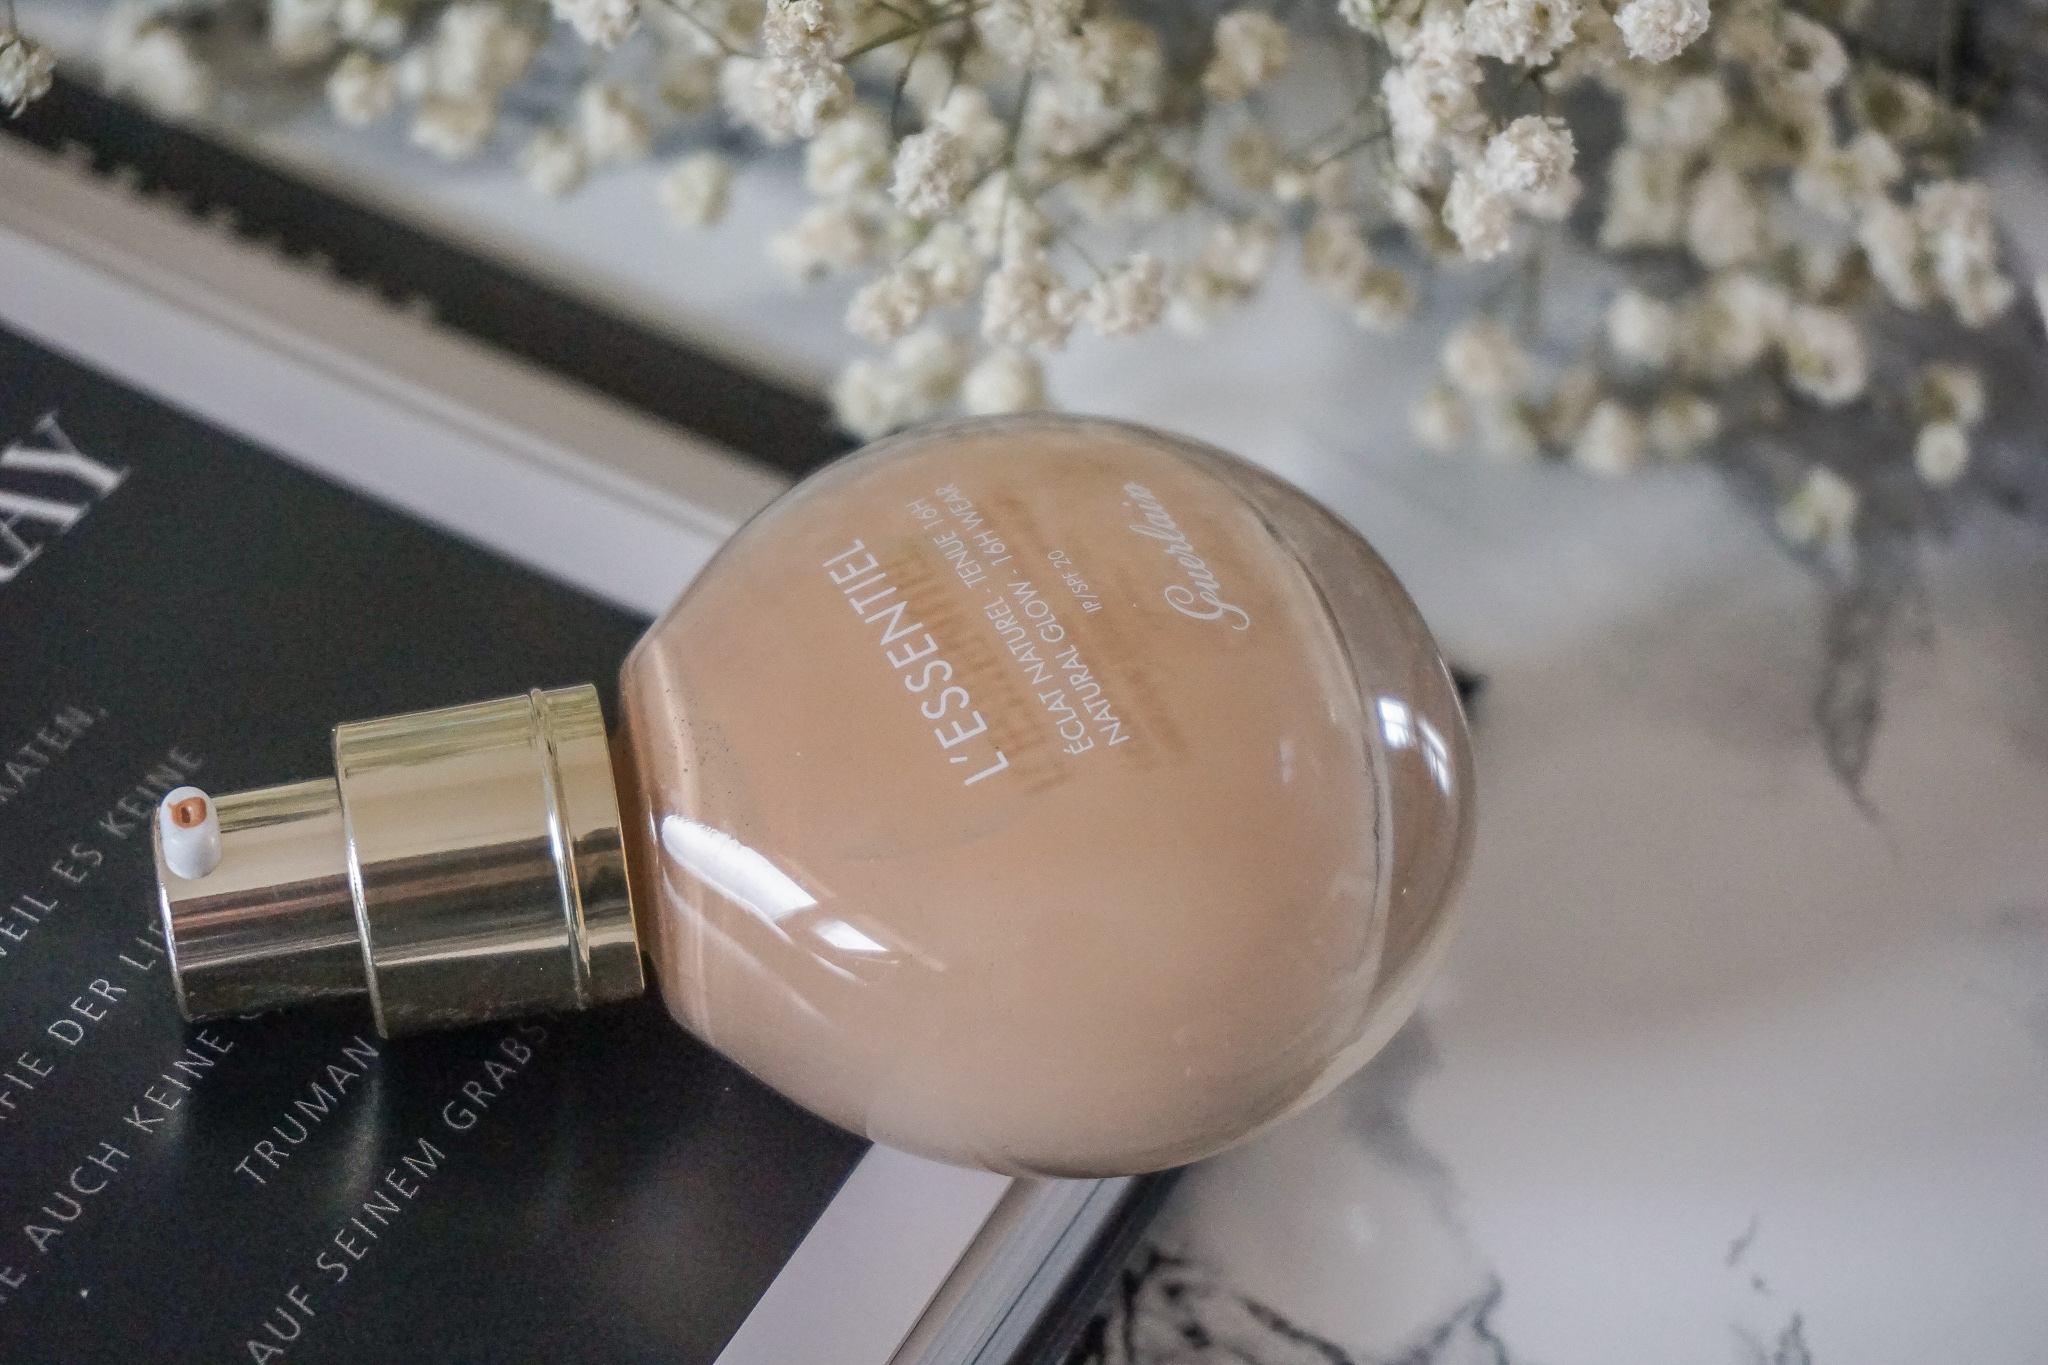 Guerlain - L'essentiel Foundation Éclat Naturel 16h Wear